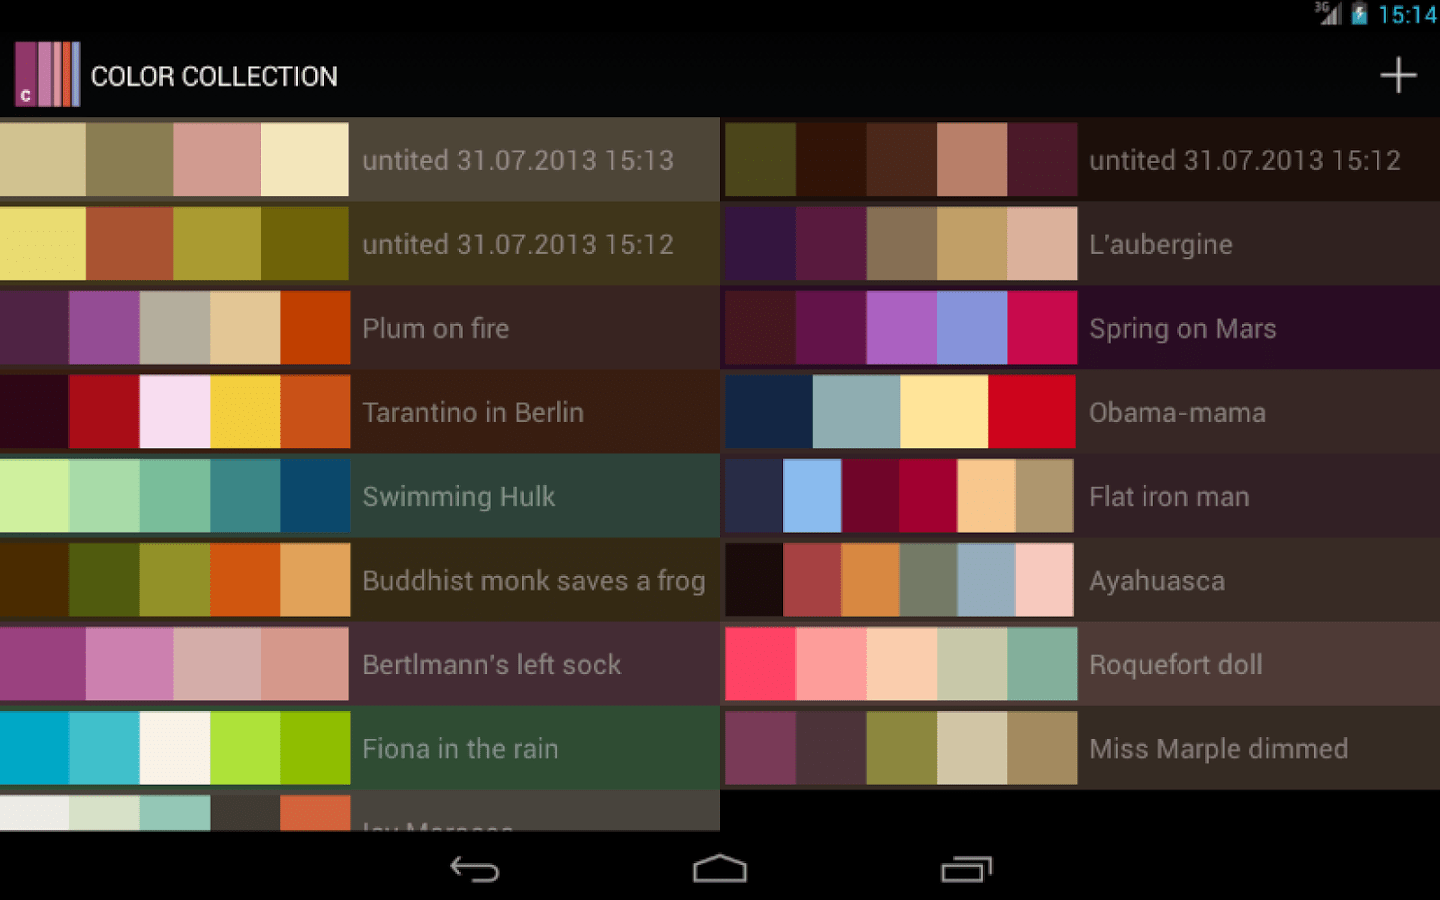 Interior Design Colour Palettes Color Collection Palettes Apk Thing Android Apps Free